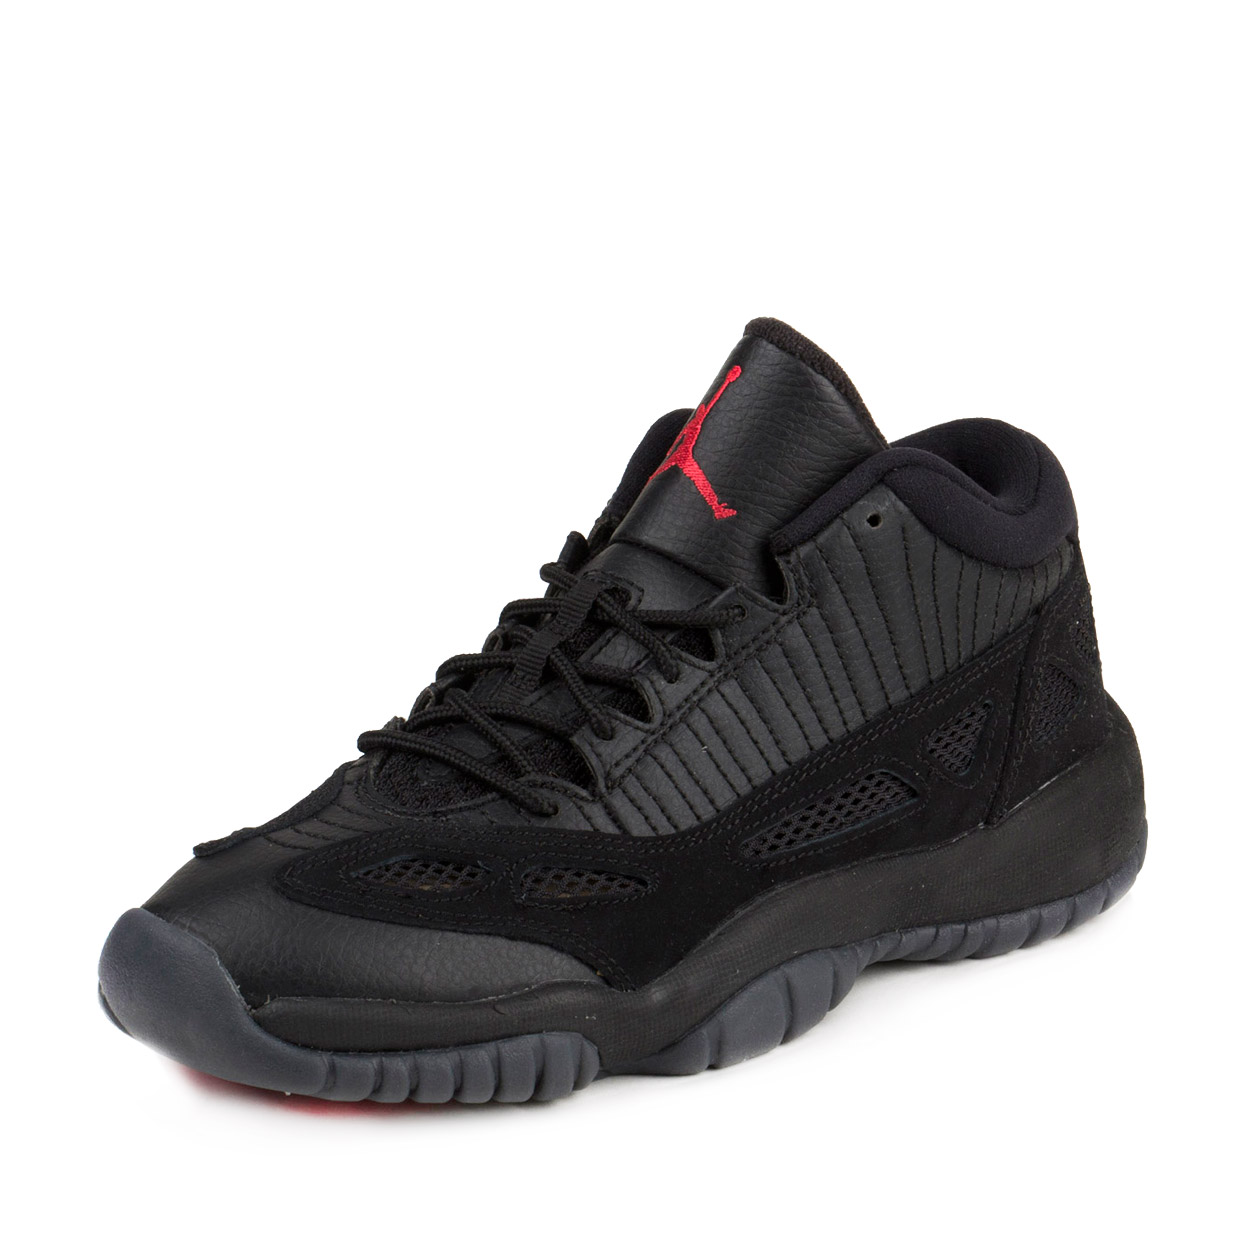 752ef49ce8355f ... buy nike mens air jordan 11 retro low bg referee black true red 3e806  b726f